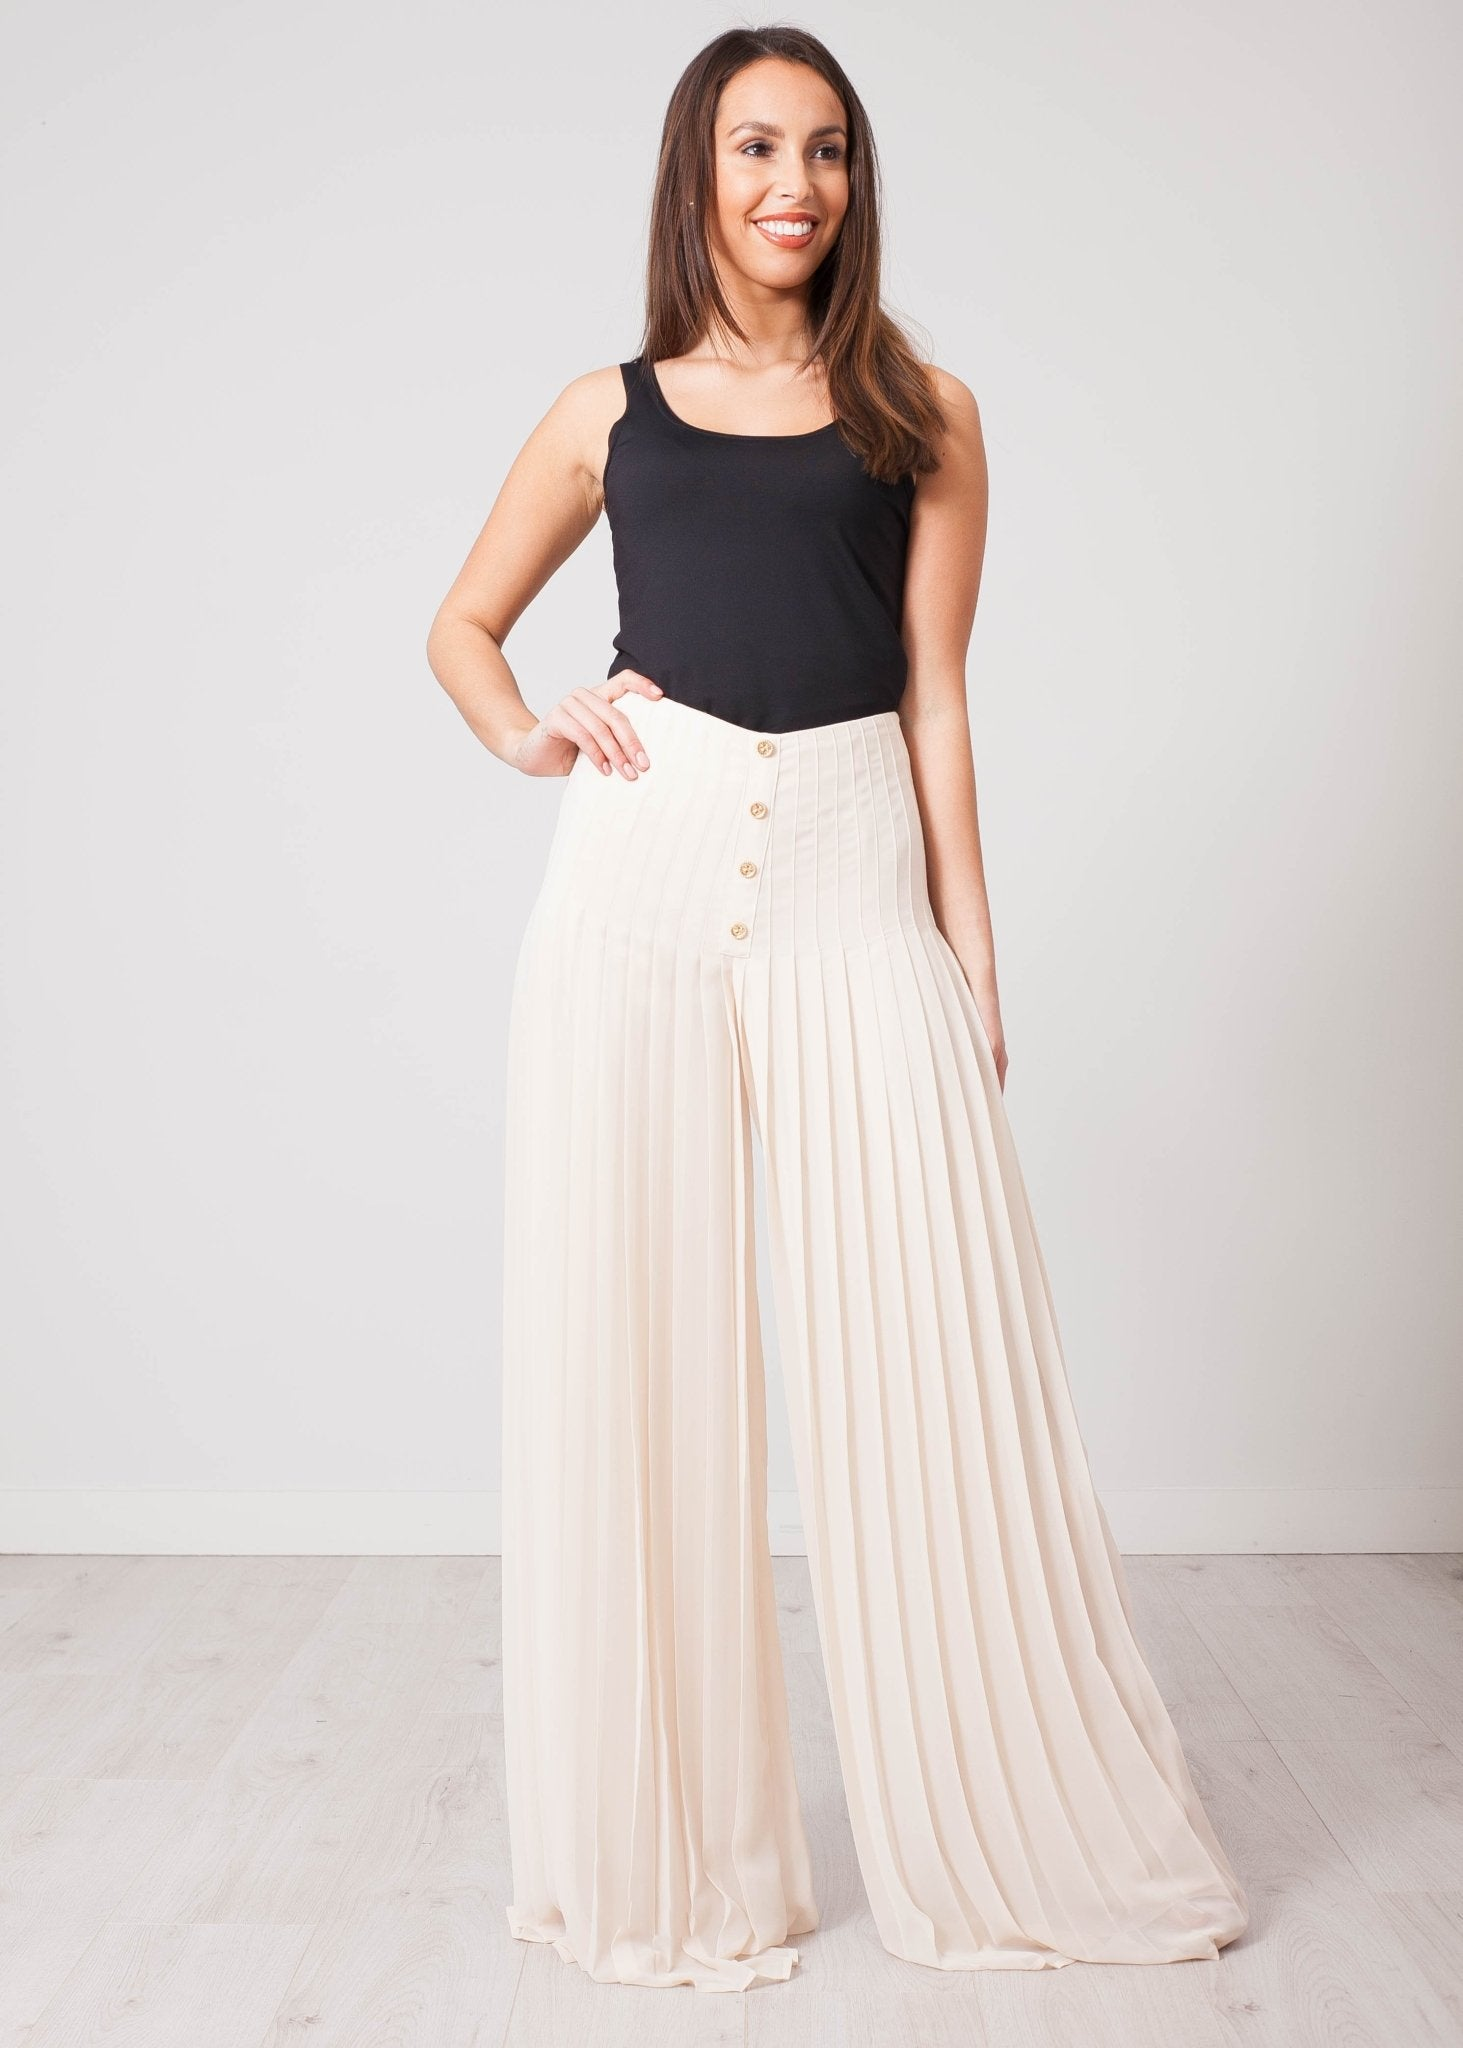 Aliyah Cream Pleated Trousers - The Walk in Wardrobe